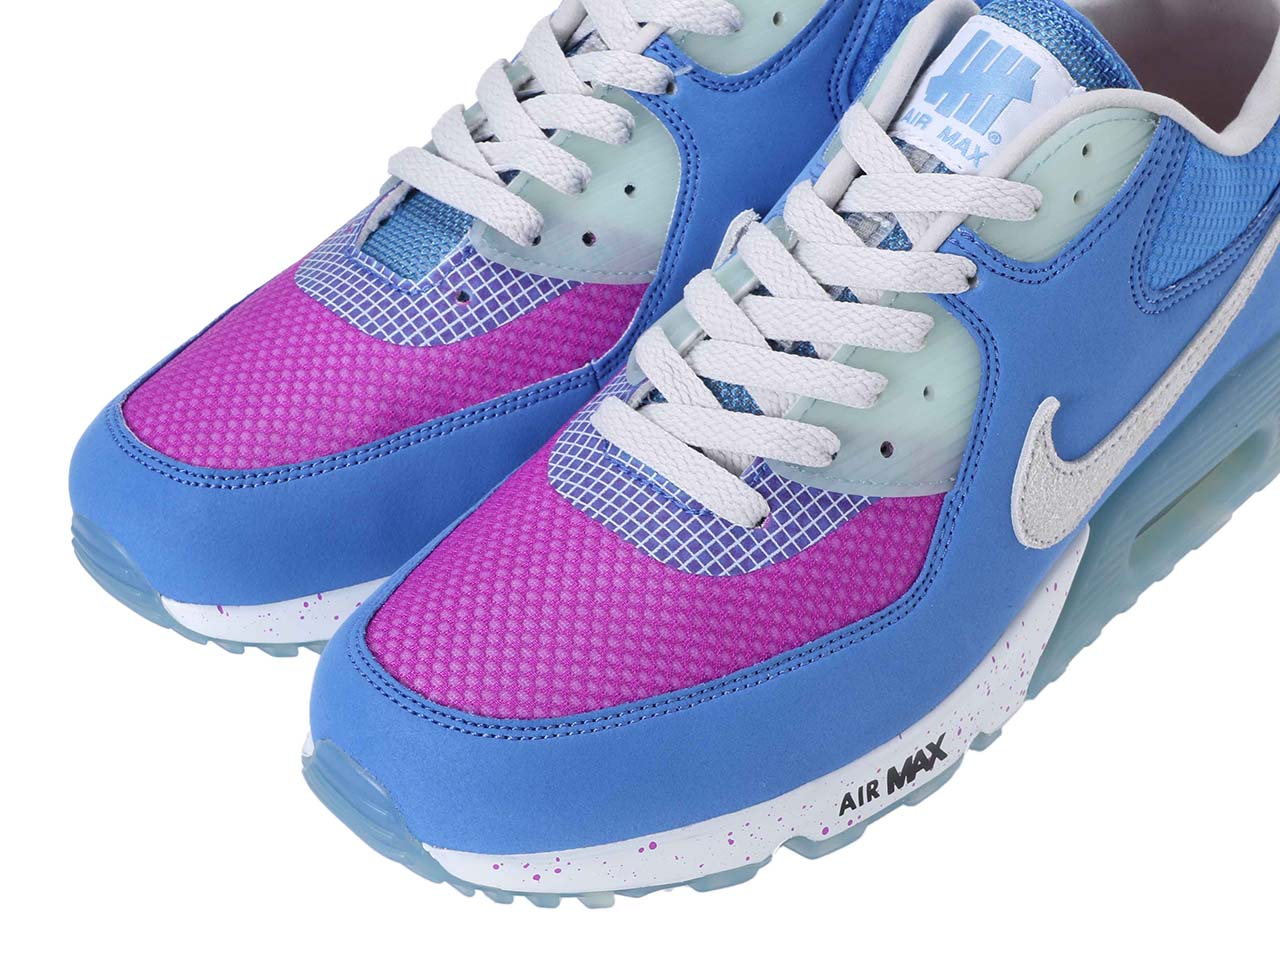 【20%OFF】UNDEFEATED × NIKE AIR MAX 90  - BLUE/PURPLE